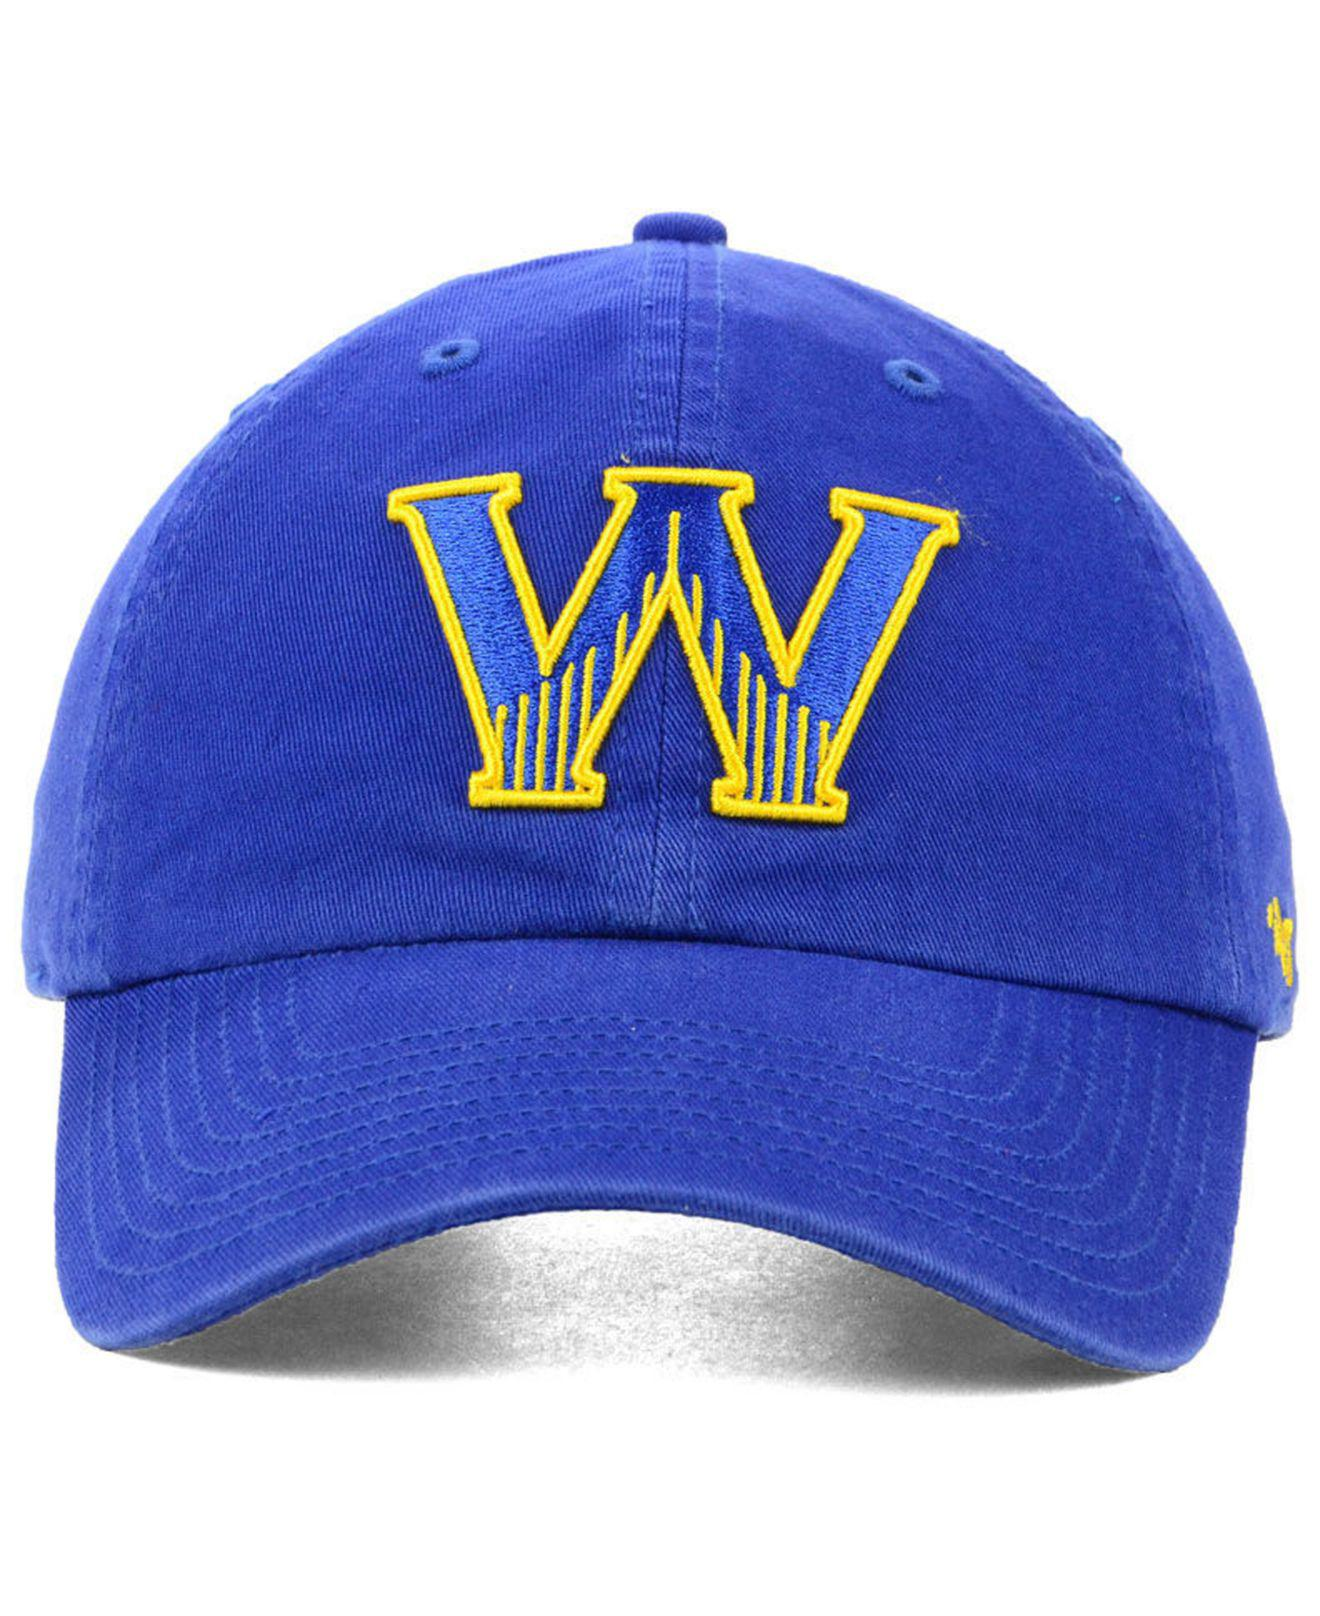 1dad15a1329be Lyst - 47 Brand Golden State Warriors Mash Up Clean Up Cap in Blue for Men